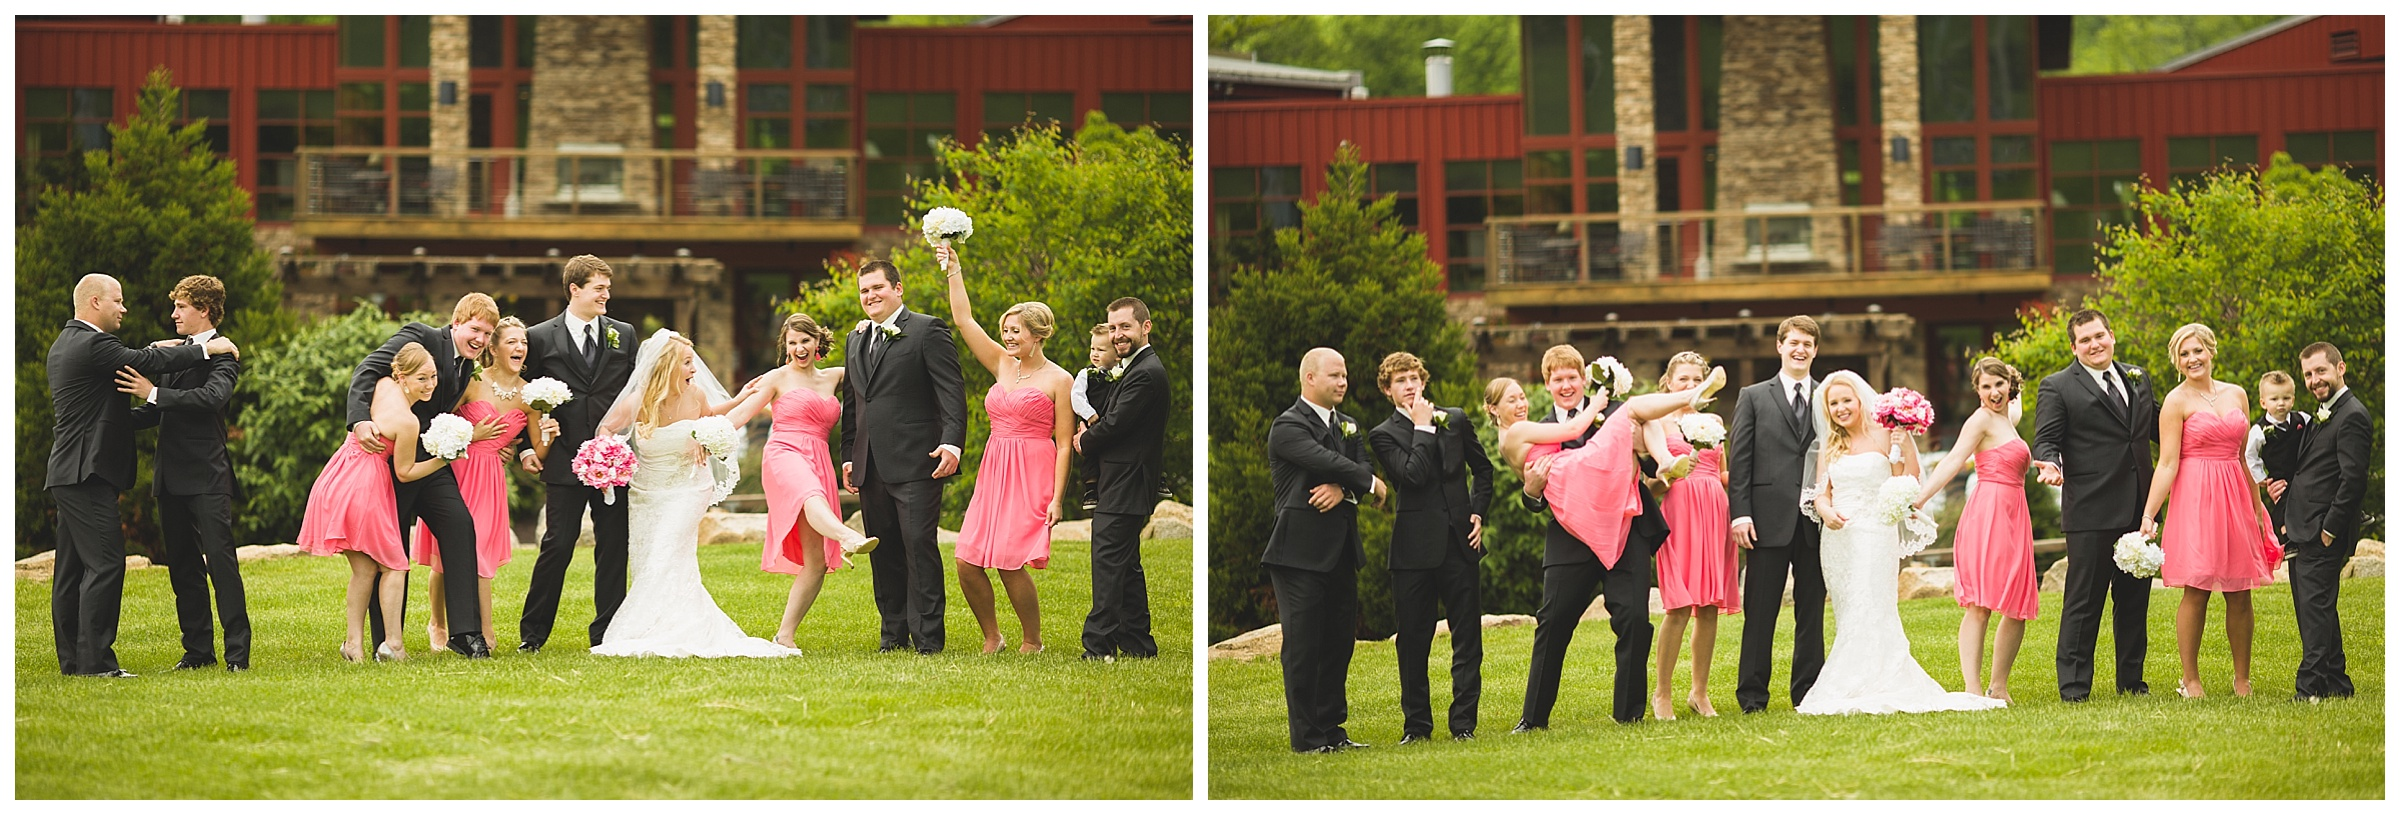 0022_Kelly and Josh's Wedding, Bear Creek Resort, PA_0022